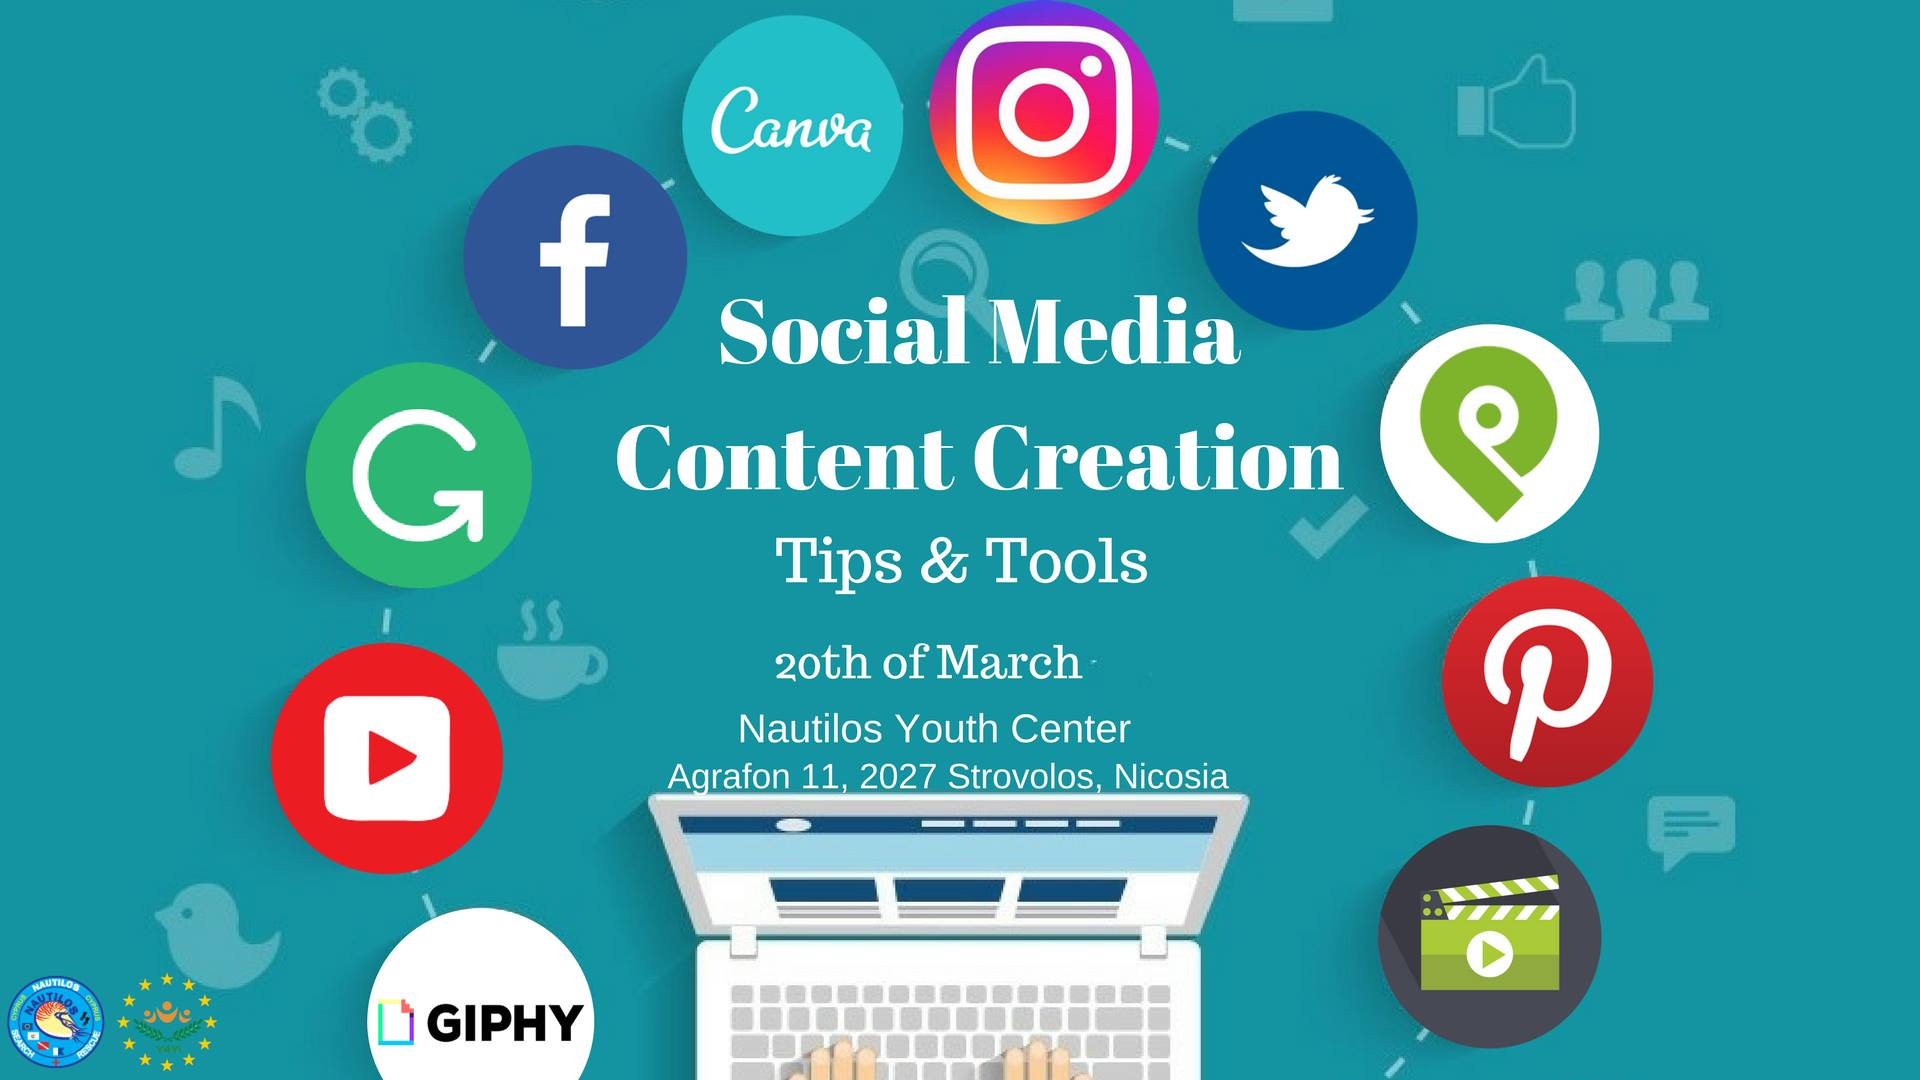 Social media content creation- Tips and Tools nautilos cyprus cyprusinno event events